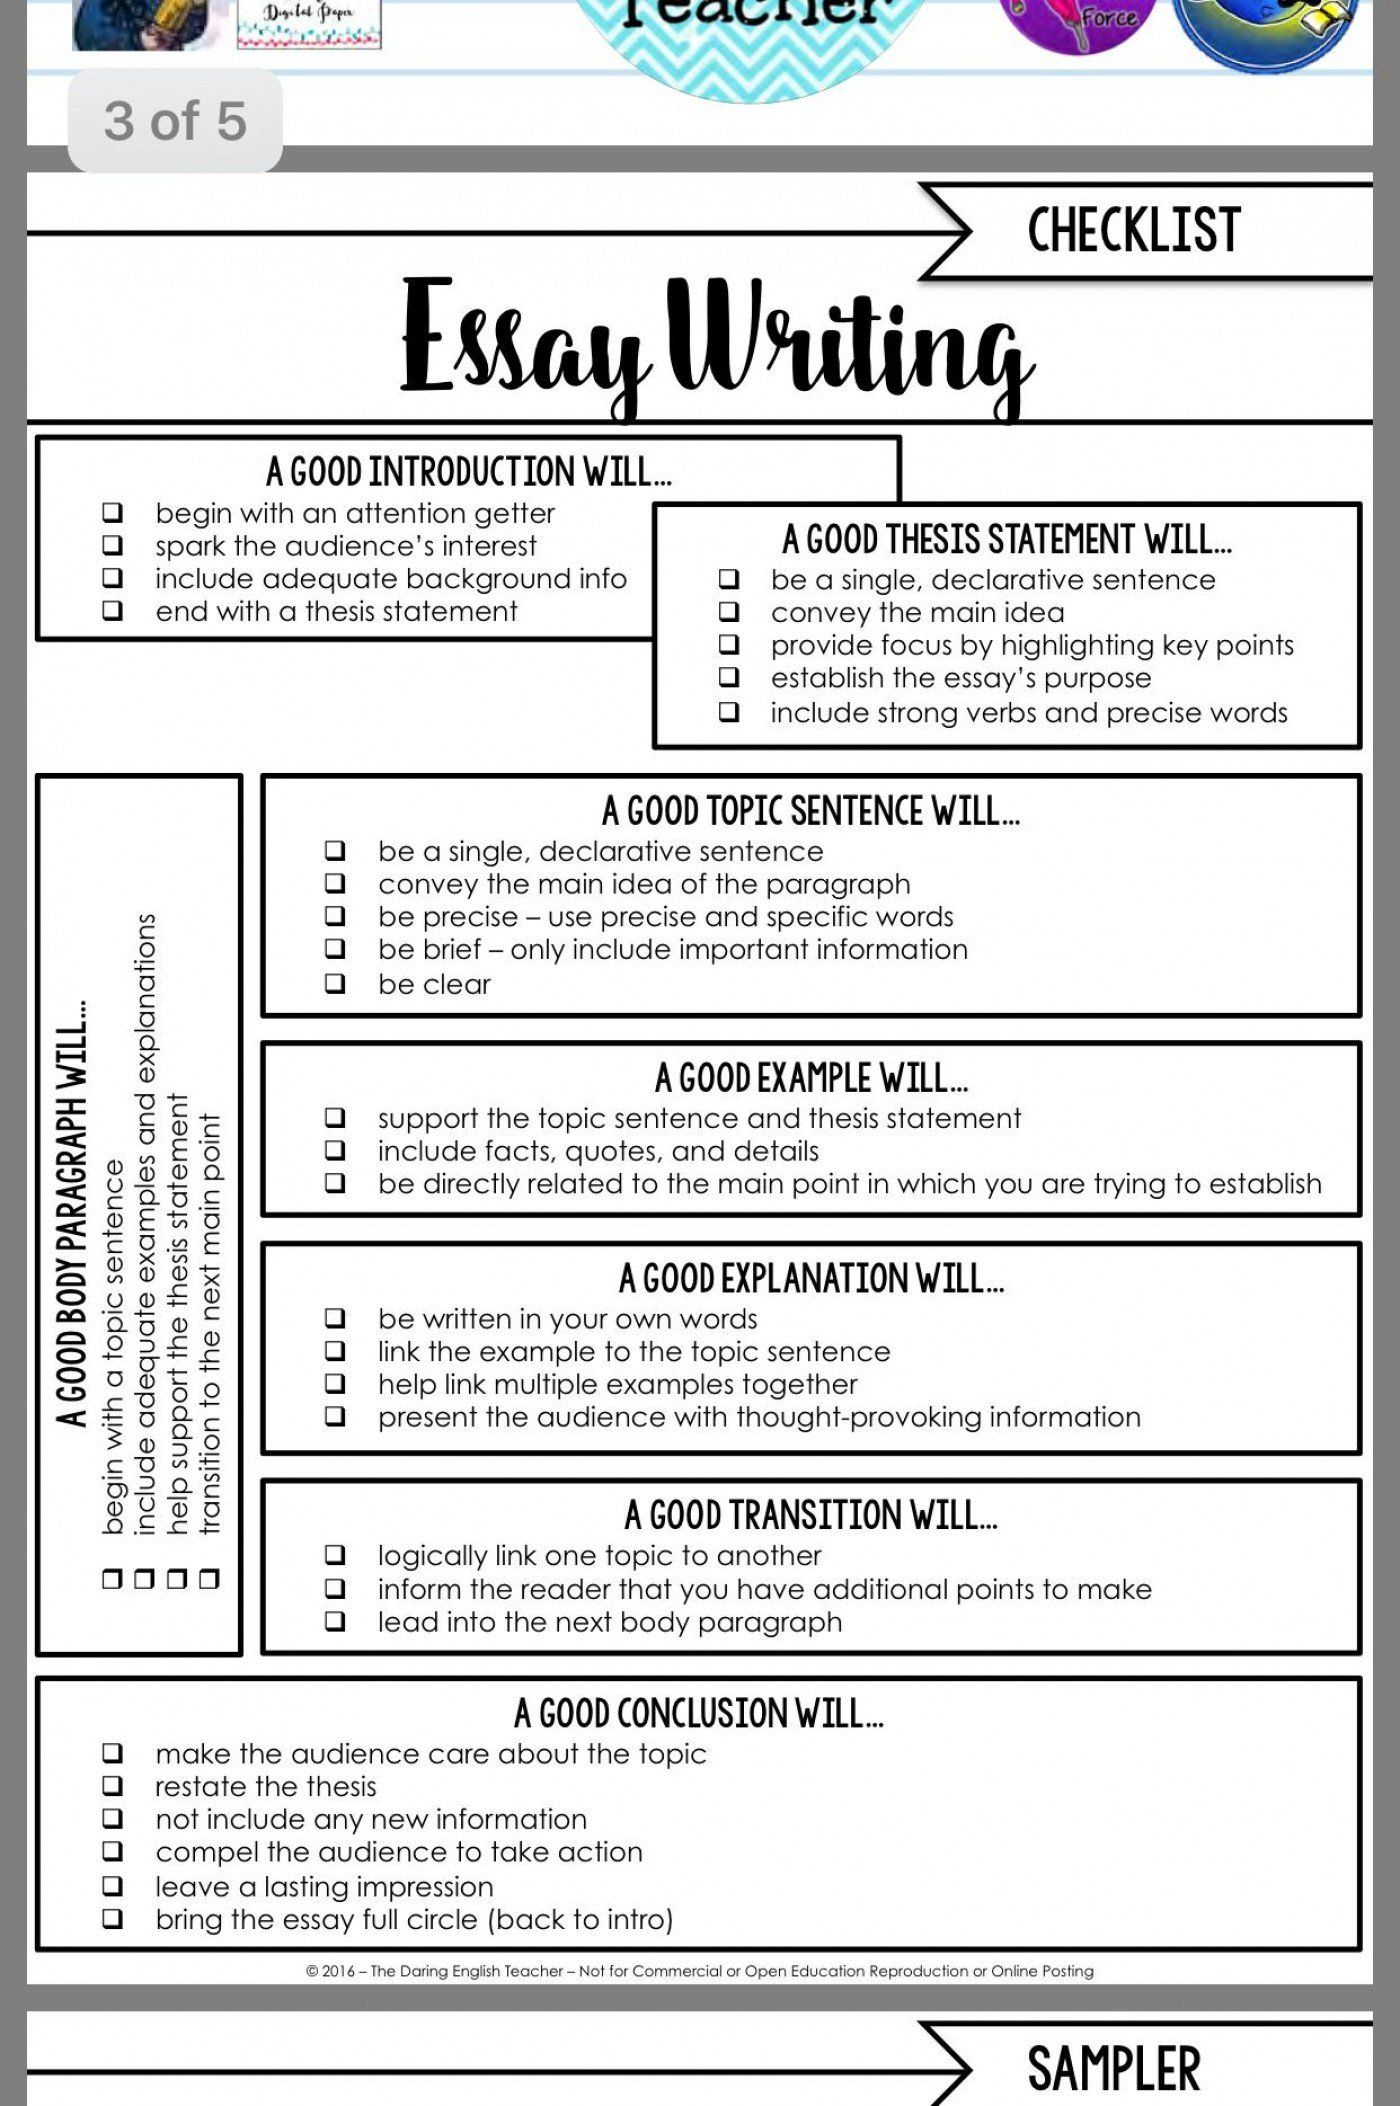 Writing Strong Leads Worksheet 003 Essay Writing Skills